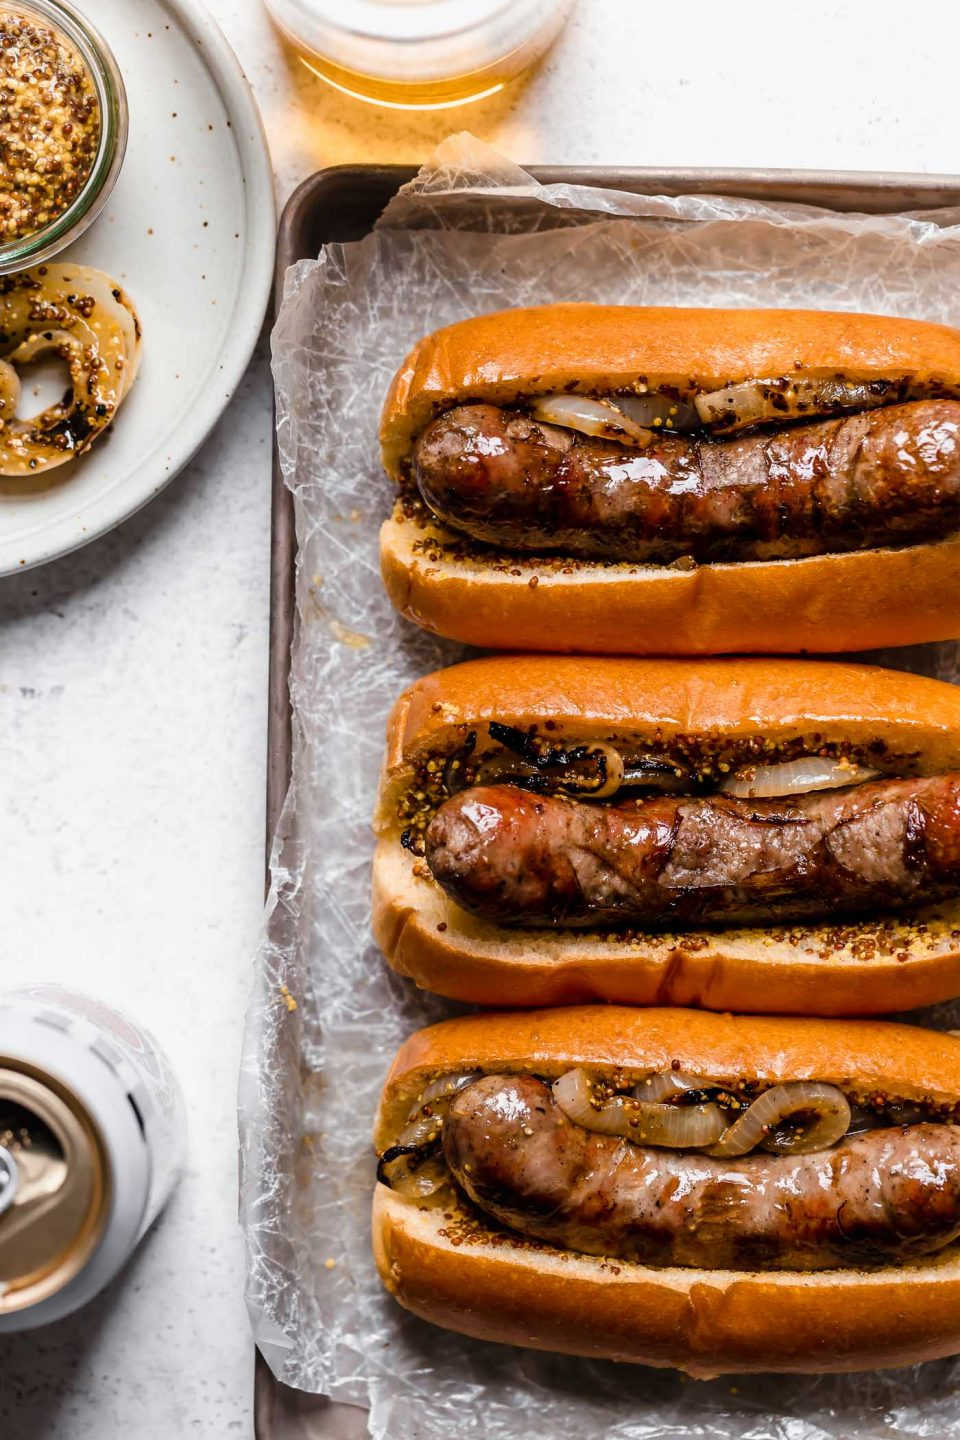 3 grilled beer brats on buns sit atop a parchment-paper lined metal baking sheet. The baking sheet is on a white surface, surrounded by a glass & can of beer, & a small plate with grilled onions.